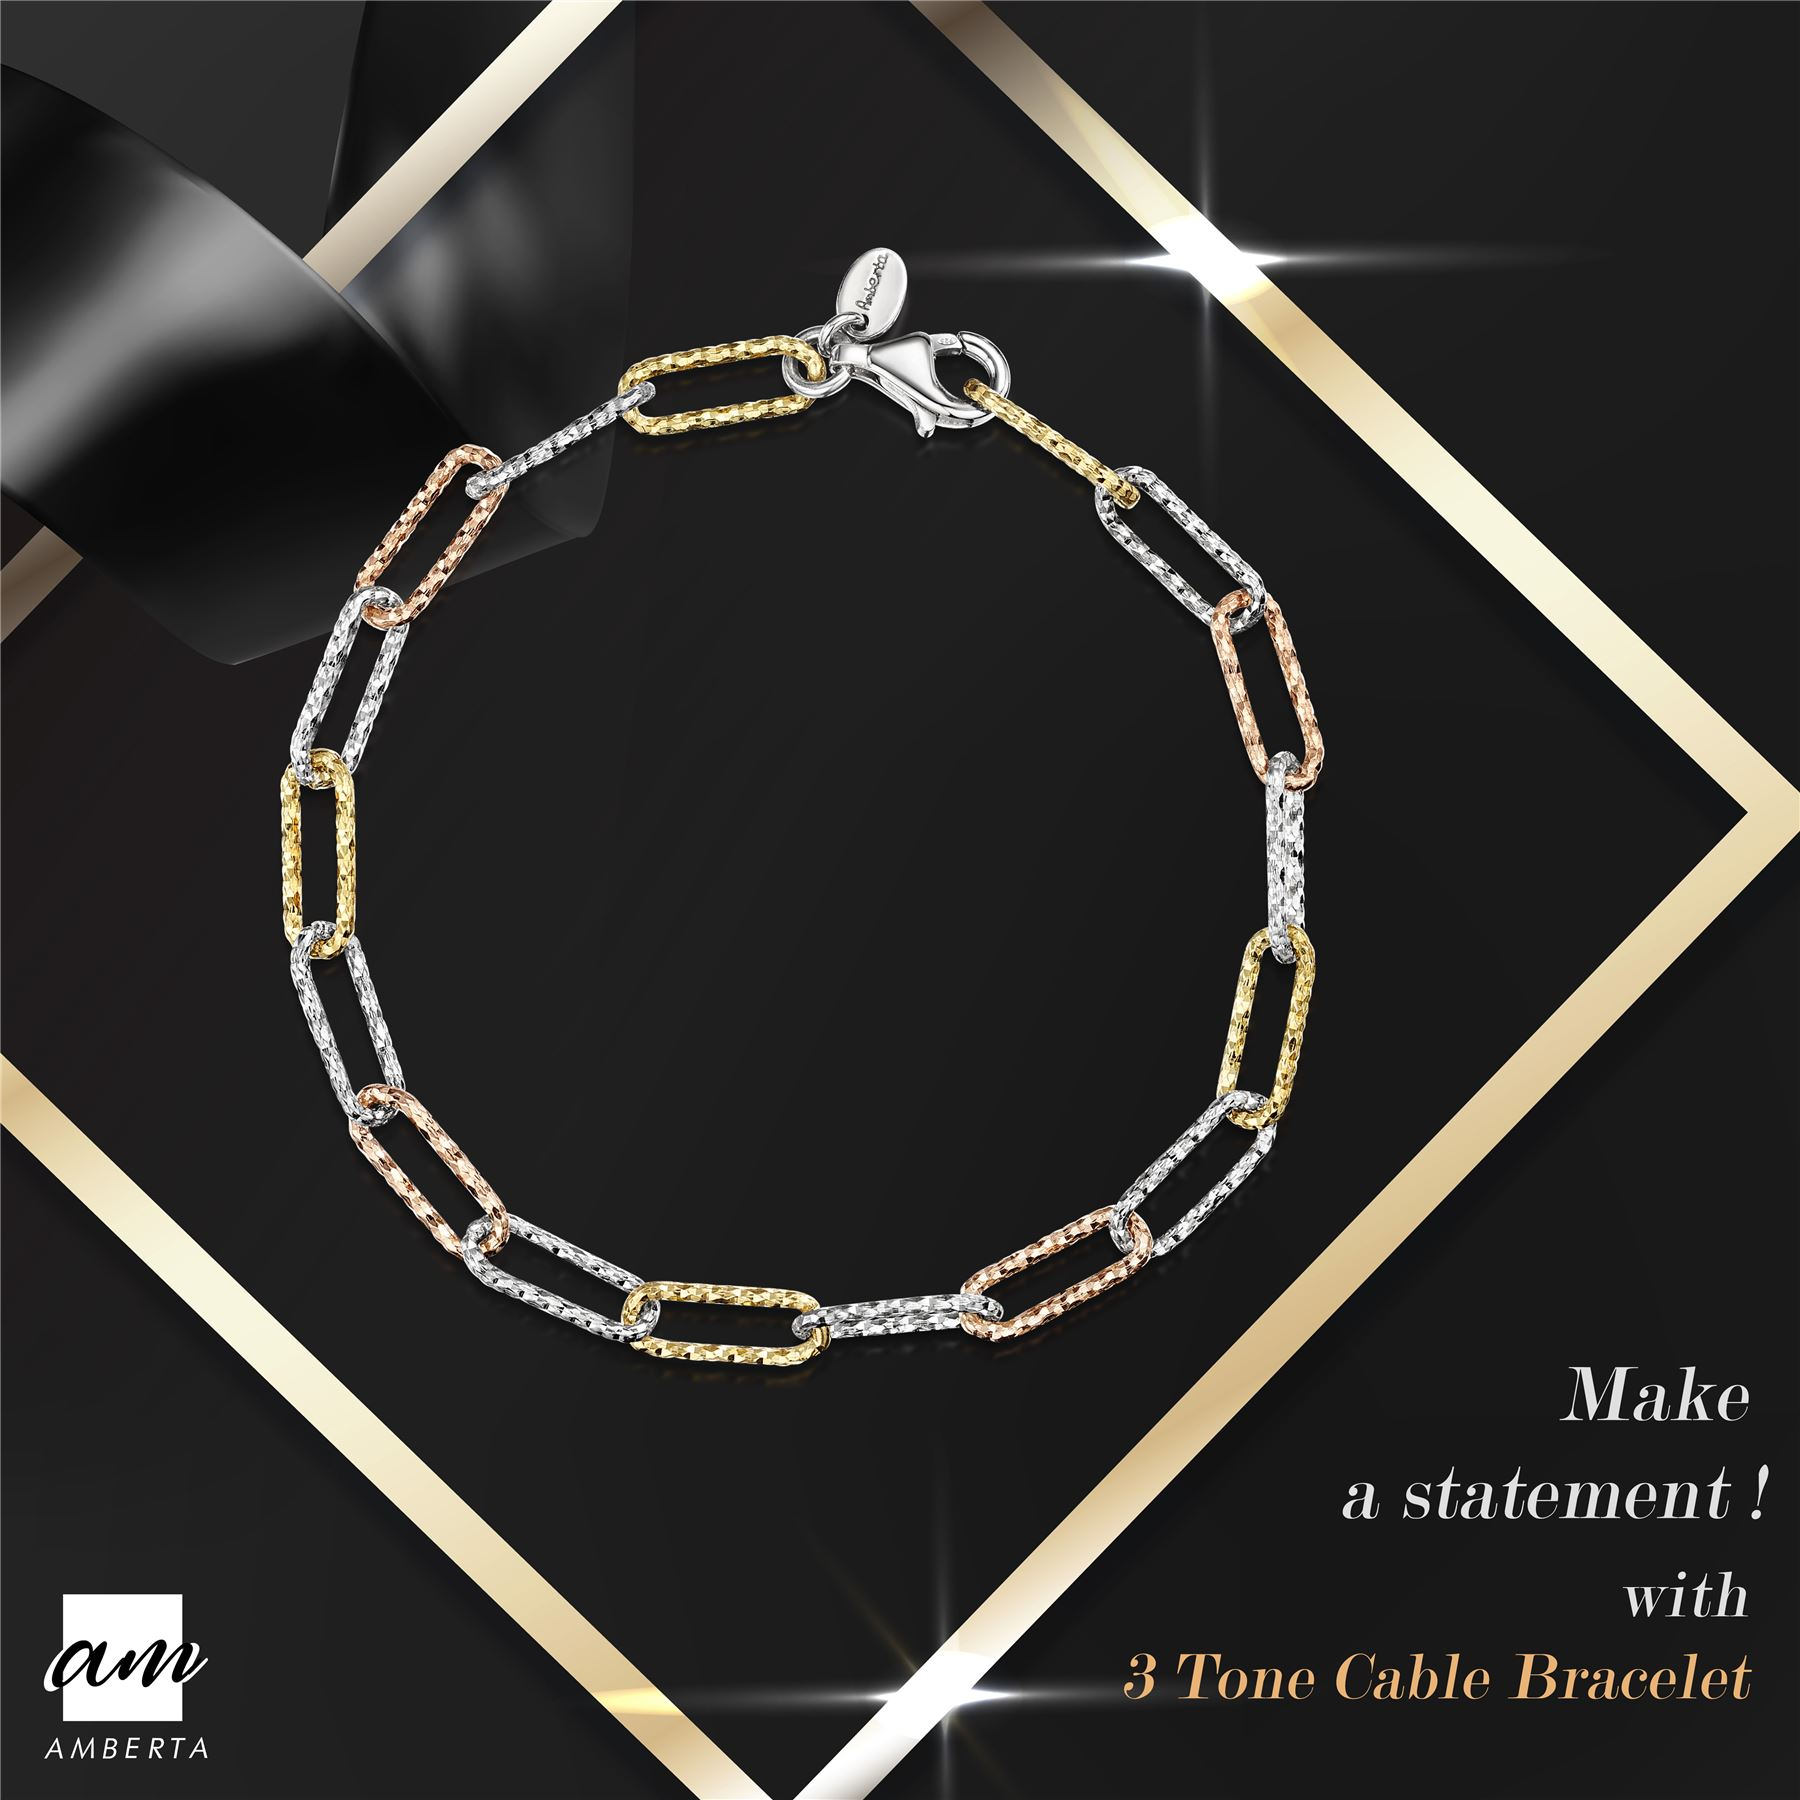 Amberta-Genuine-Real-925-Sterling-Silver-Chain-Bracelet-for-Women-from-Italy miniature 6